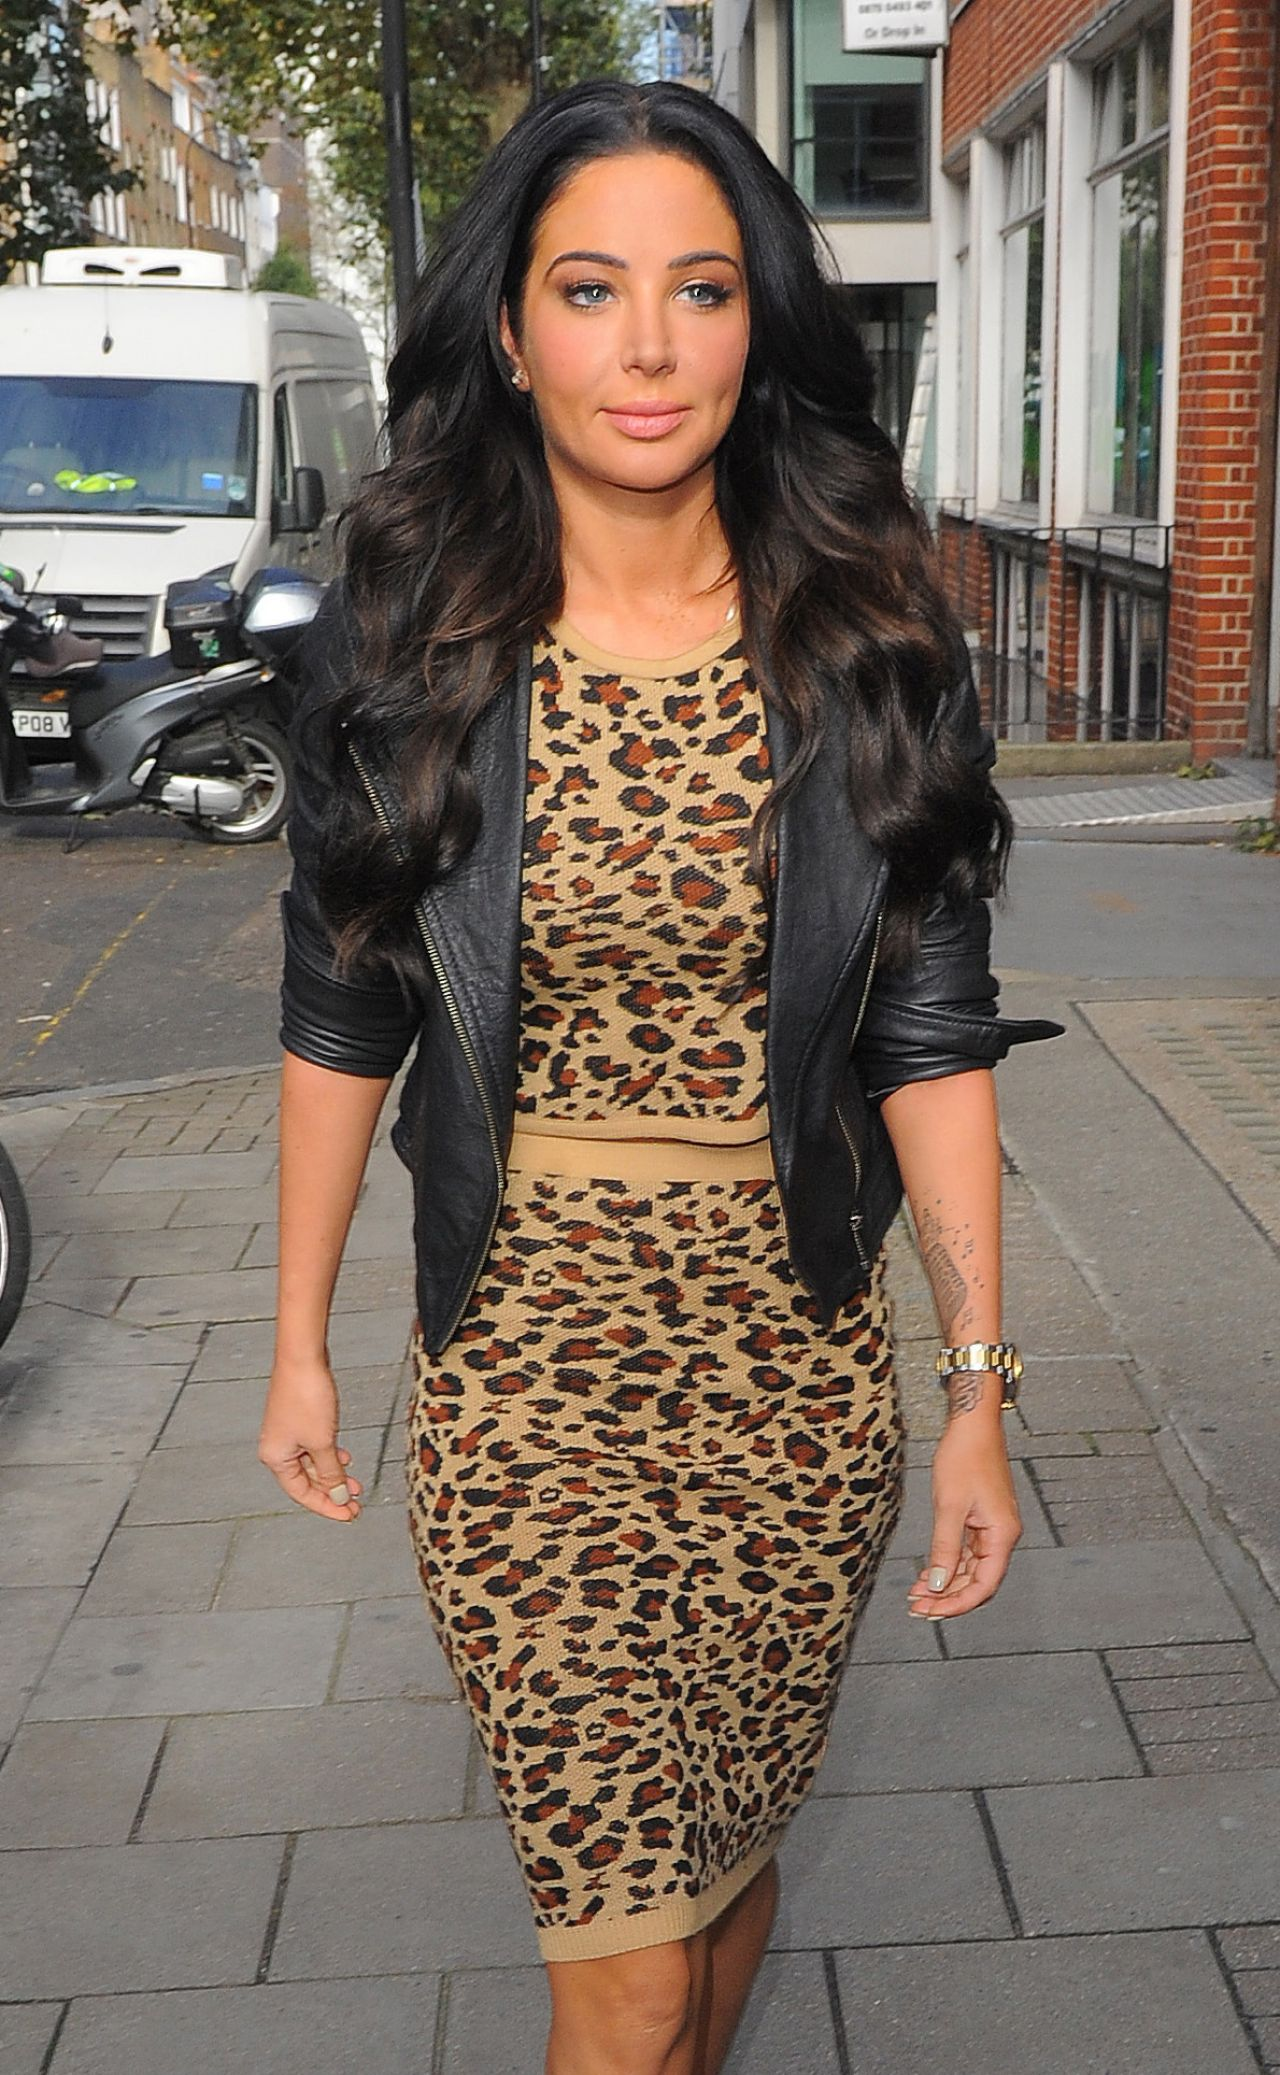 Tulisa Contostavlos at Capital and Global Radio in London - October 2014